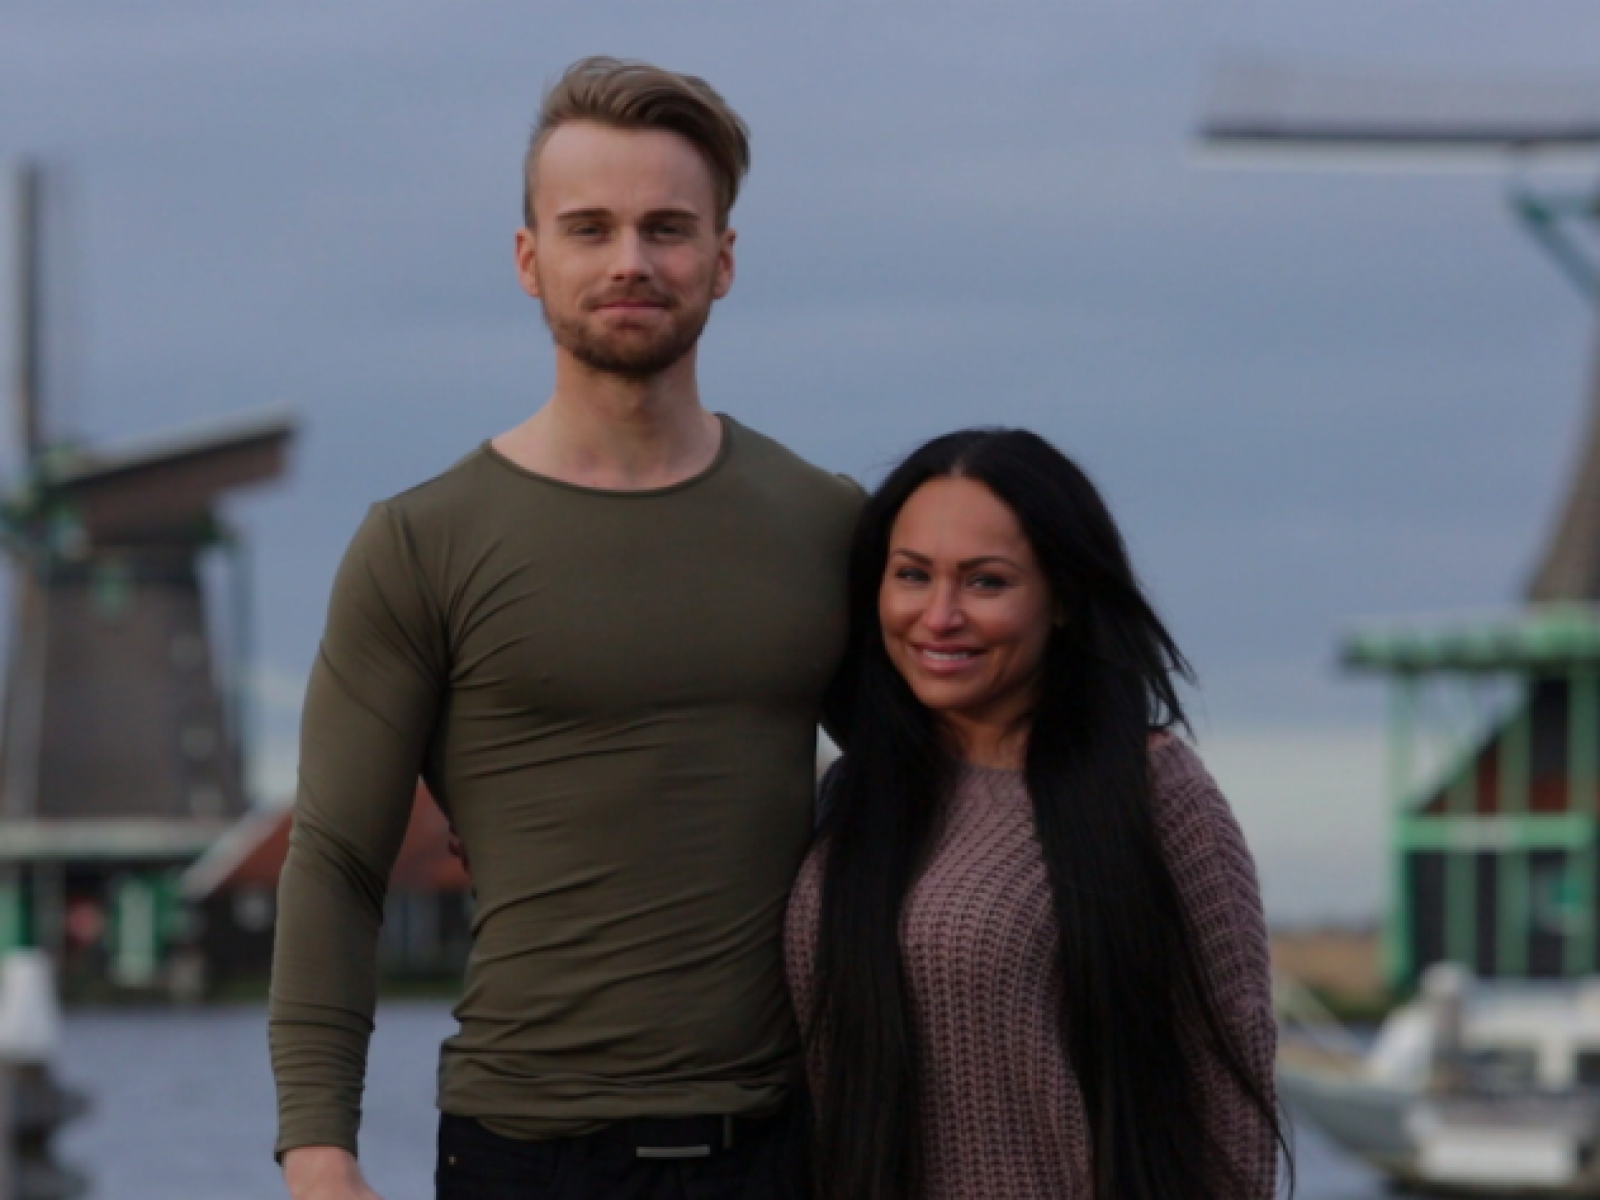 Are '90 Day Fiancé' Stars Jesse and Darcey Still Together After